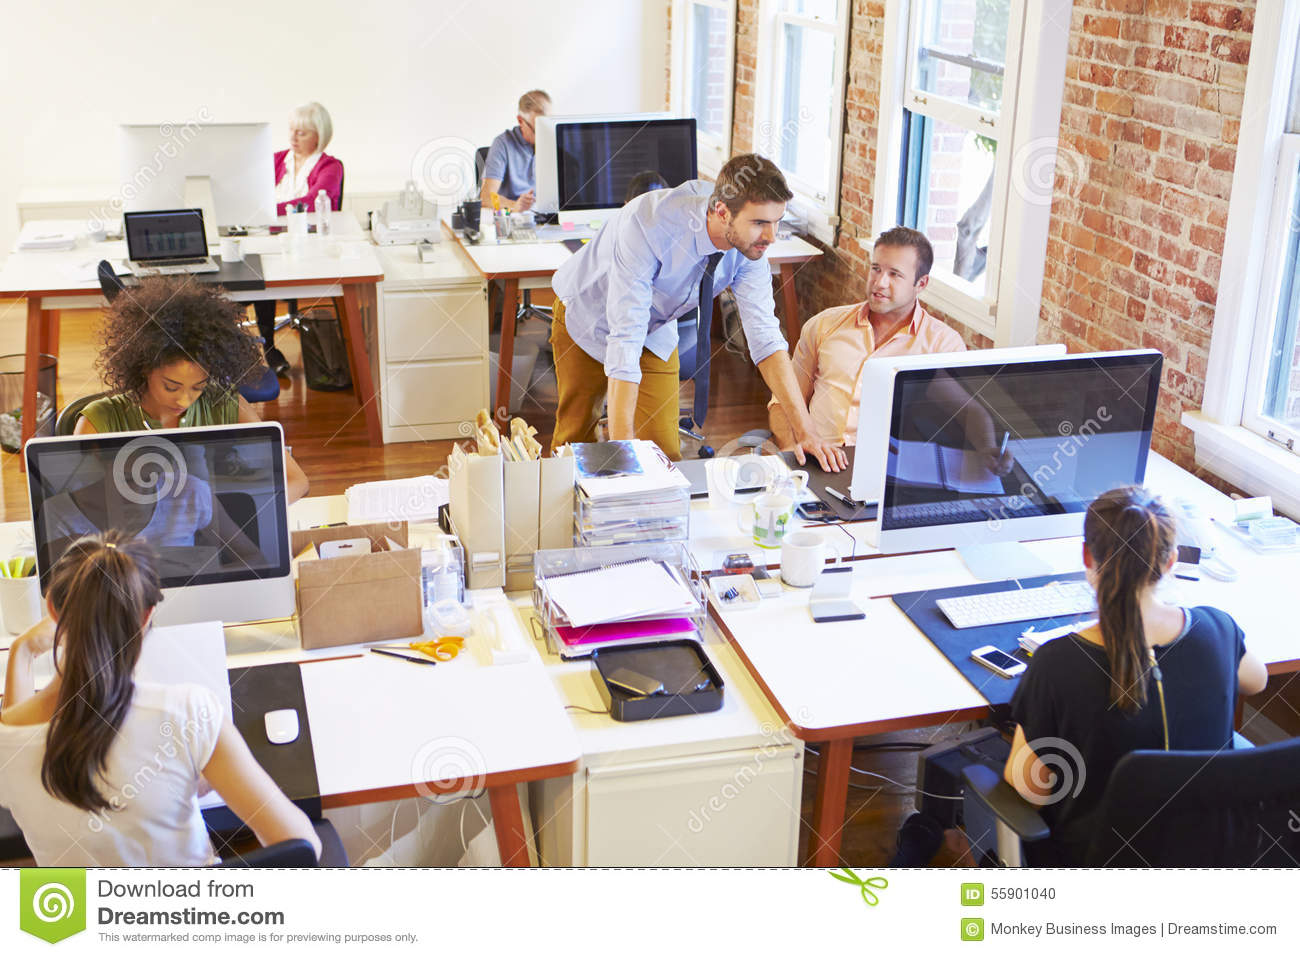 wide angle view of busy design office with workers at